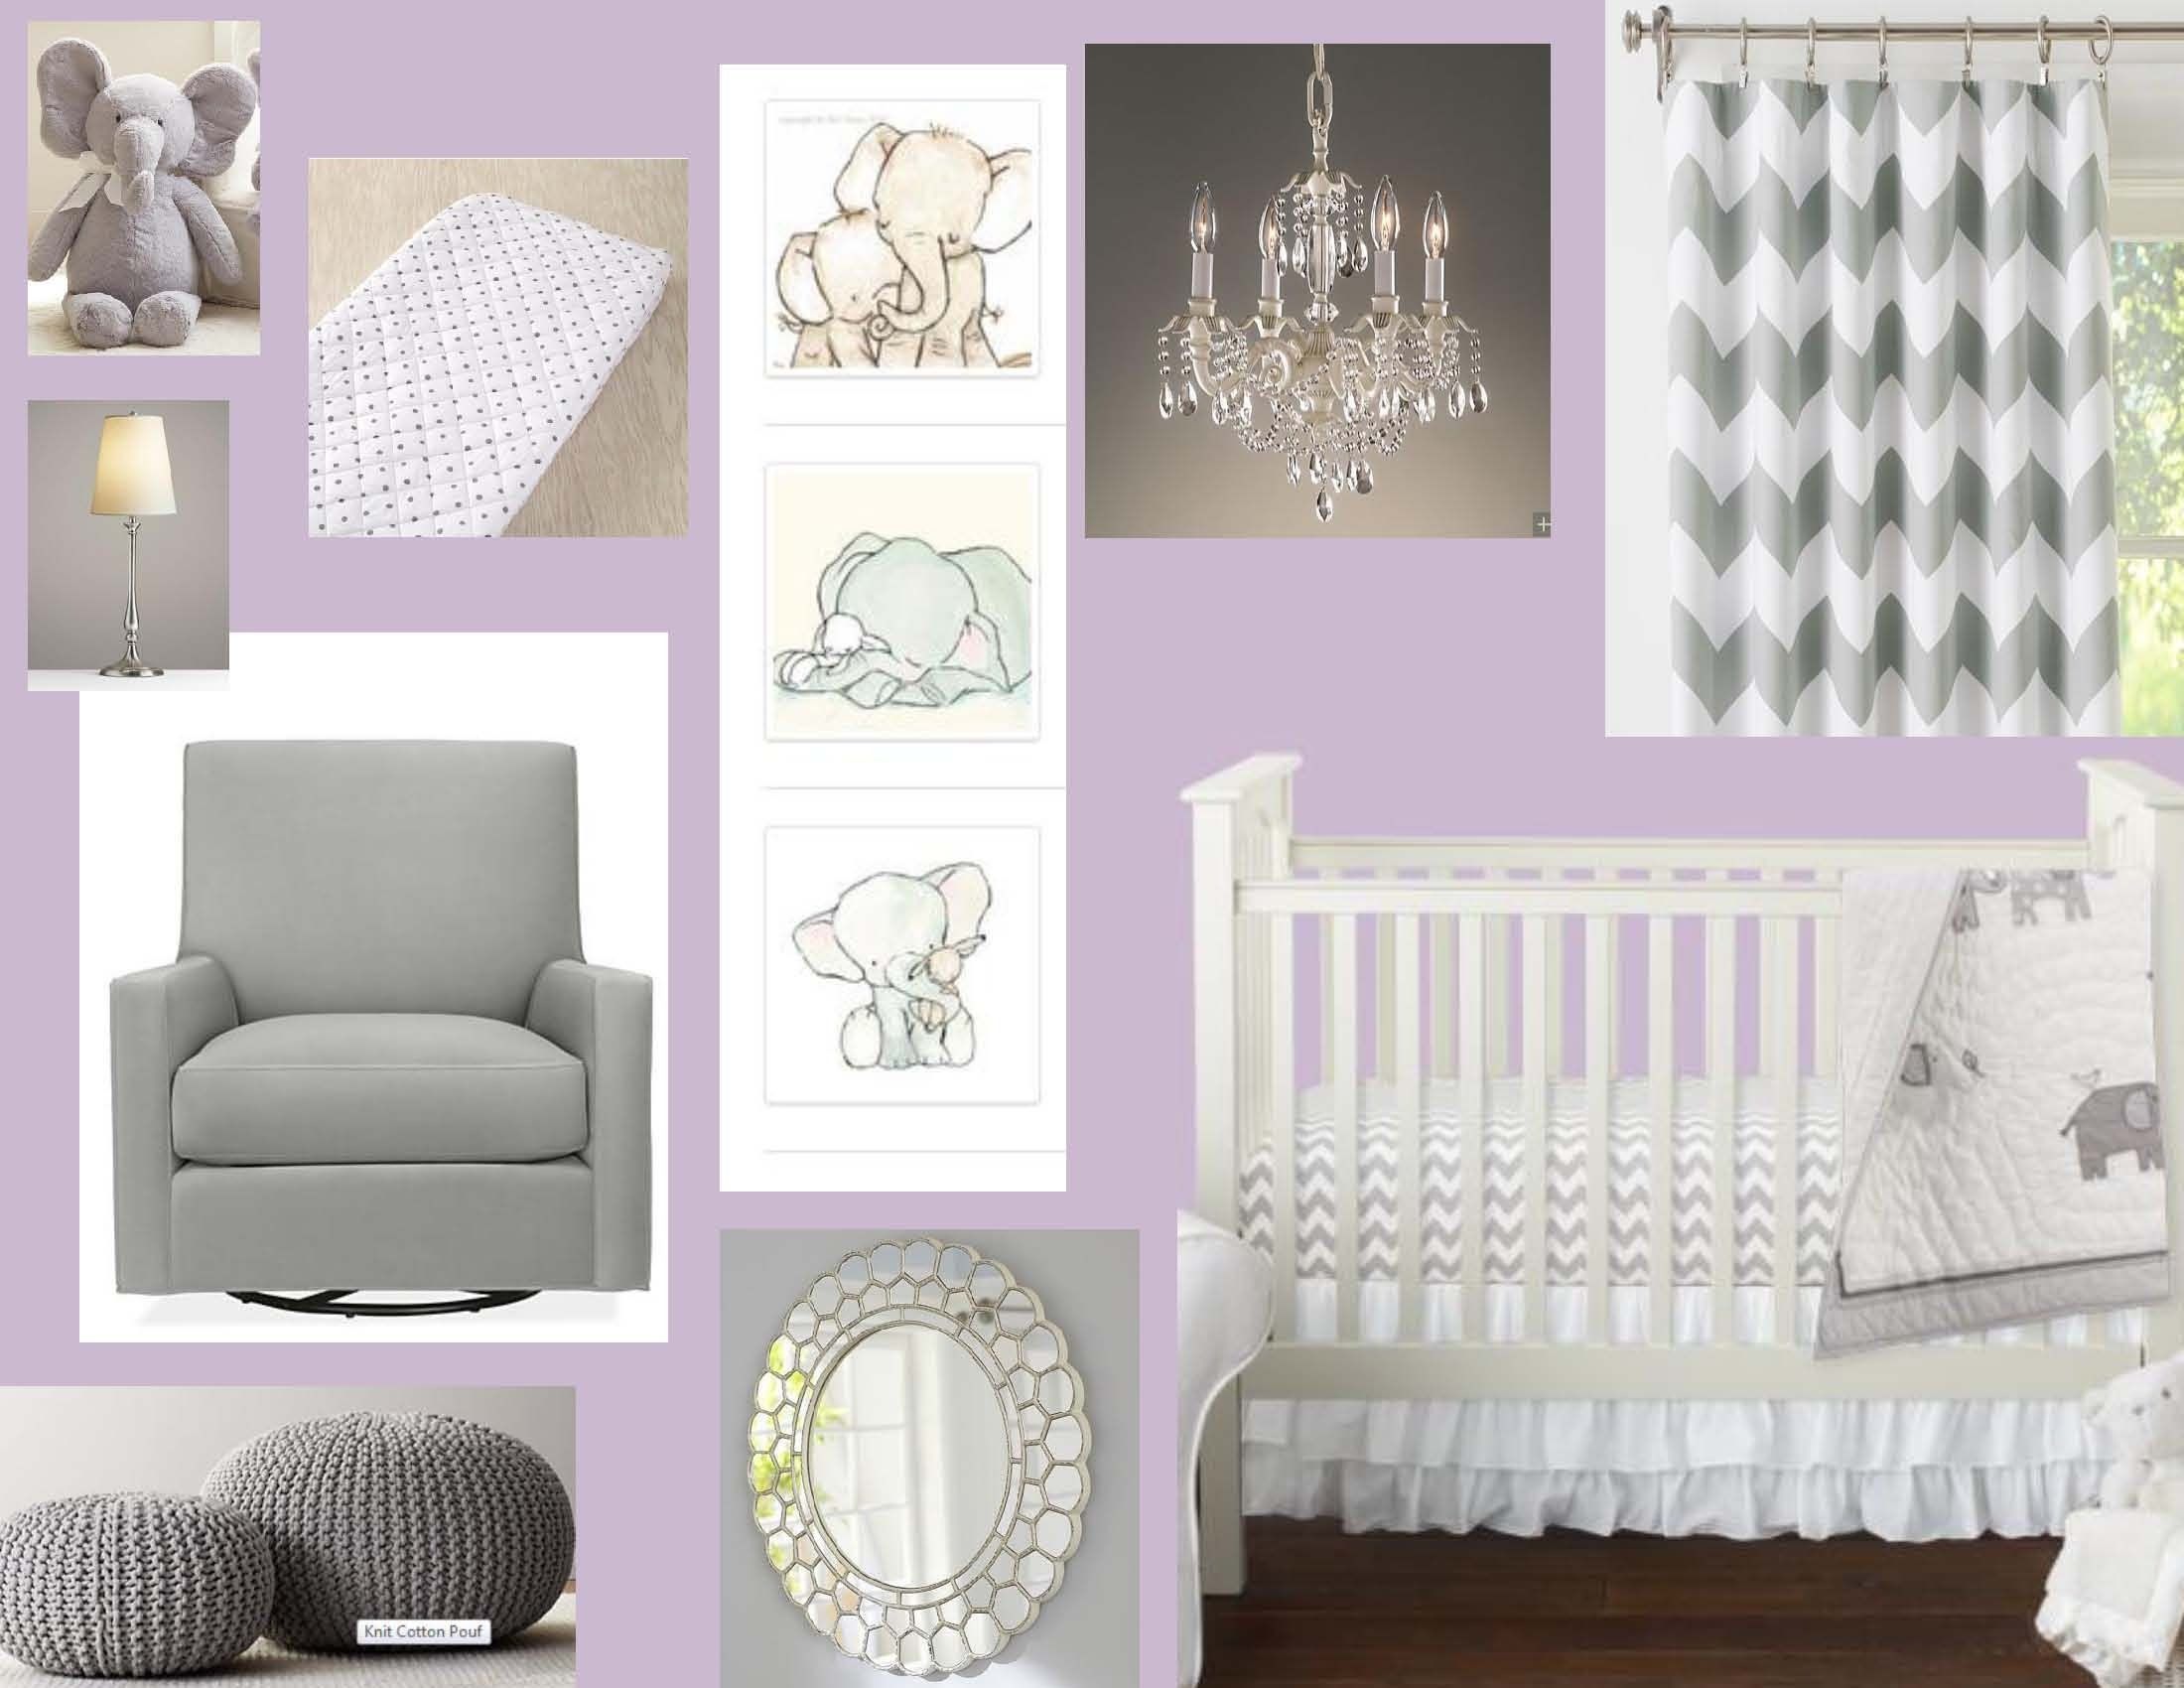 Lavender and Gray Bedroom Awesome Purple and Grey Elephant Nursery Design Board